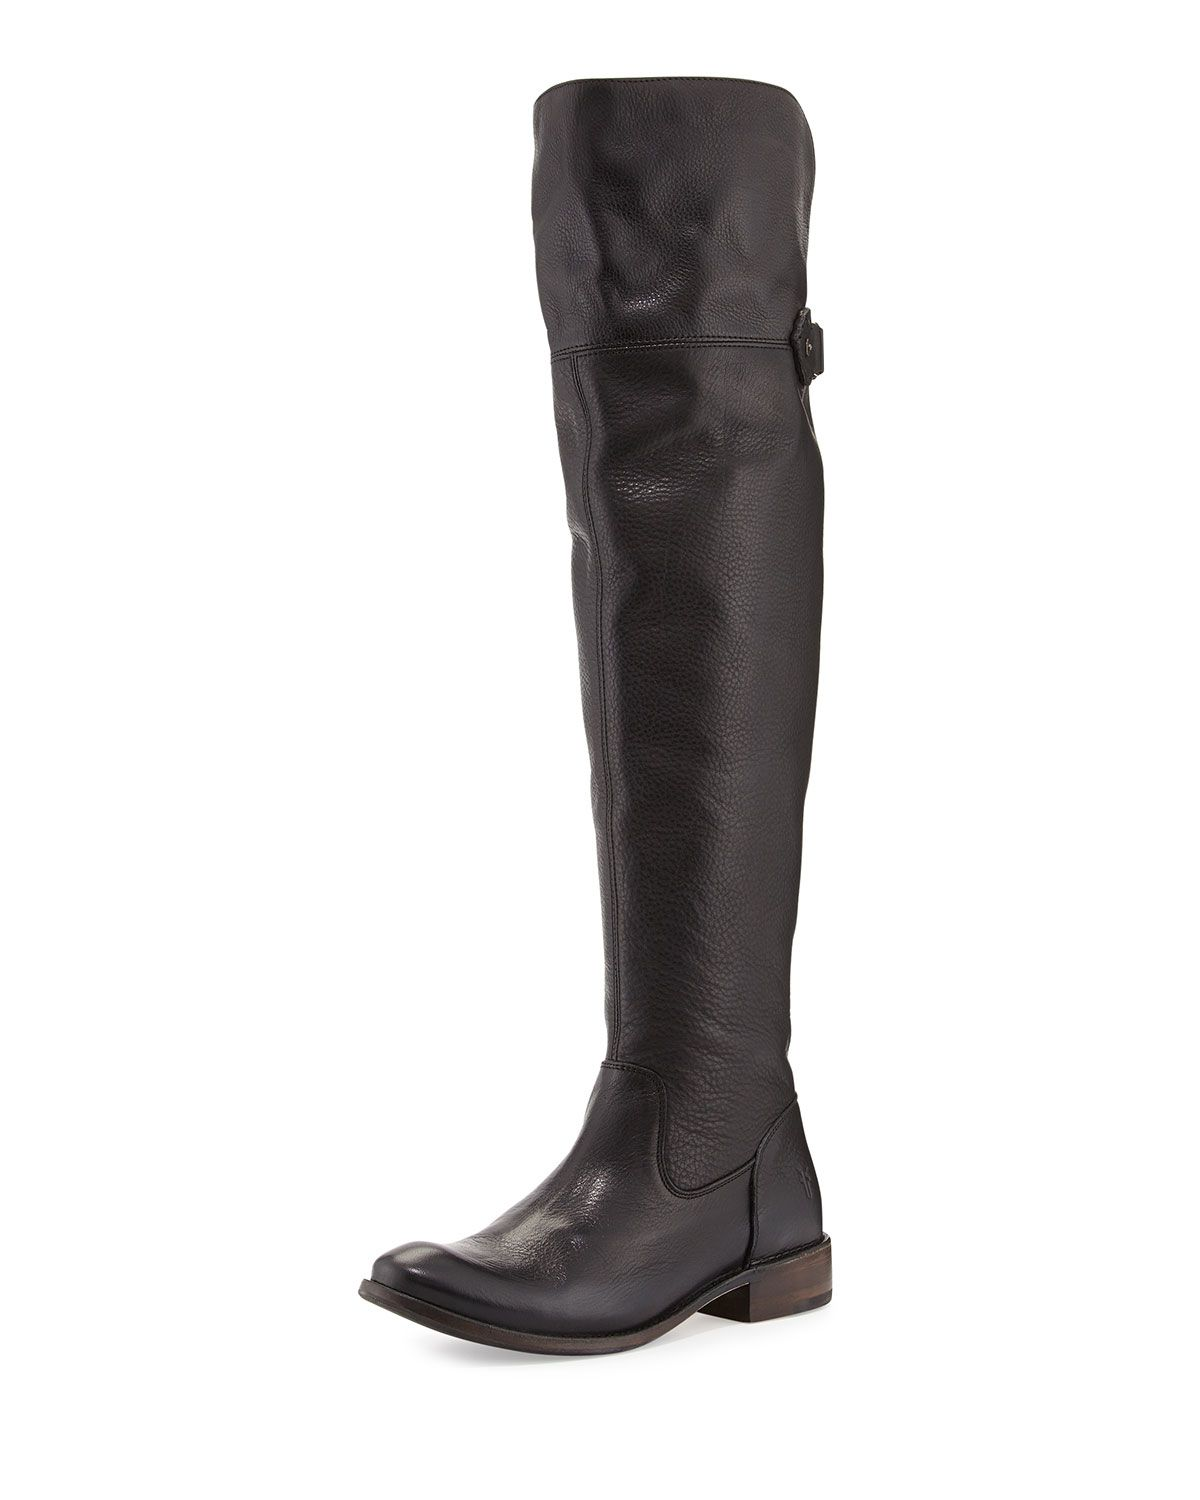 Frye Shirley Over-the-Knee Riding Boot, Men's, Size: 8B